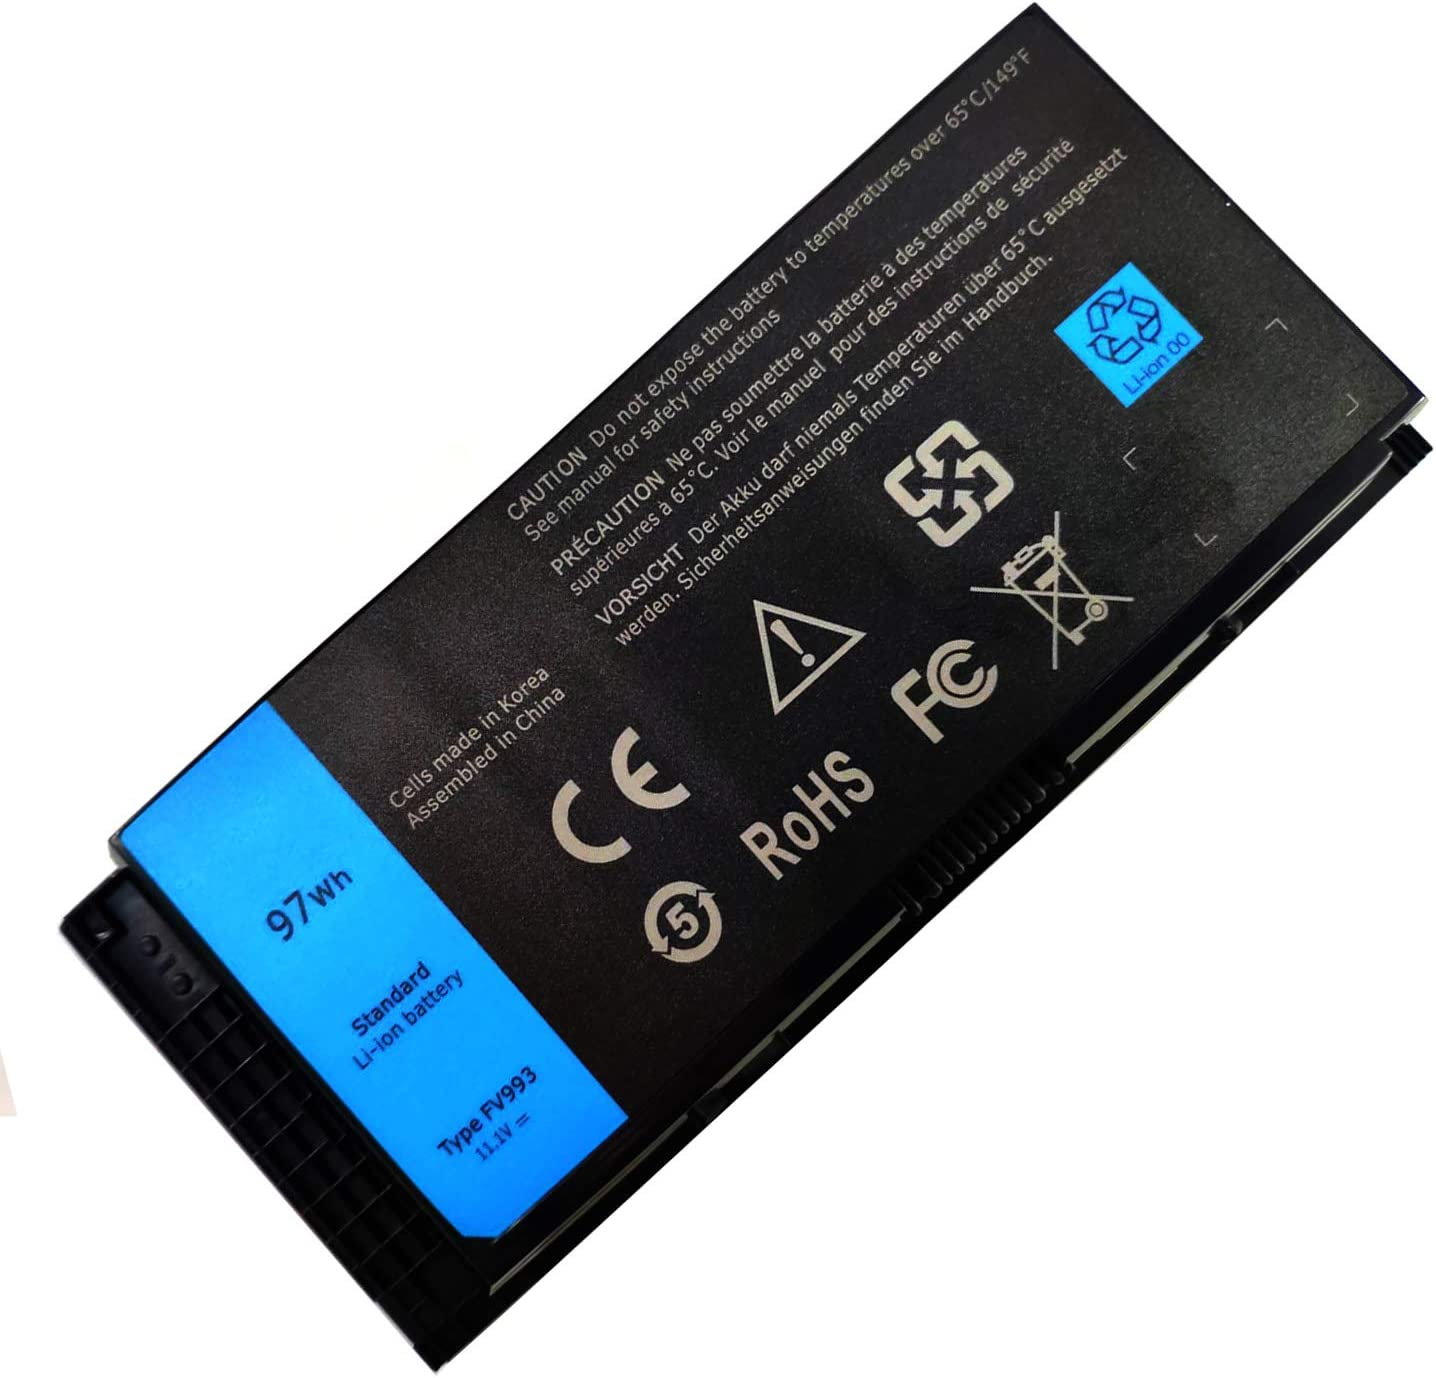 EndlessBattery New FV993 (9Cell 97WH 11.1V) Laptop Battery Compatible with Dell Precision M4600 M4700 M4800 M6600 M6700 M6800 R7PND JHYP2 K4RDX 0TN1K5 V7M28 7DWMT FJJ4W PG6RC G5M10